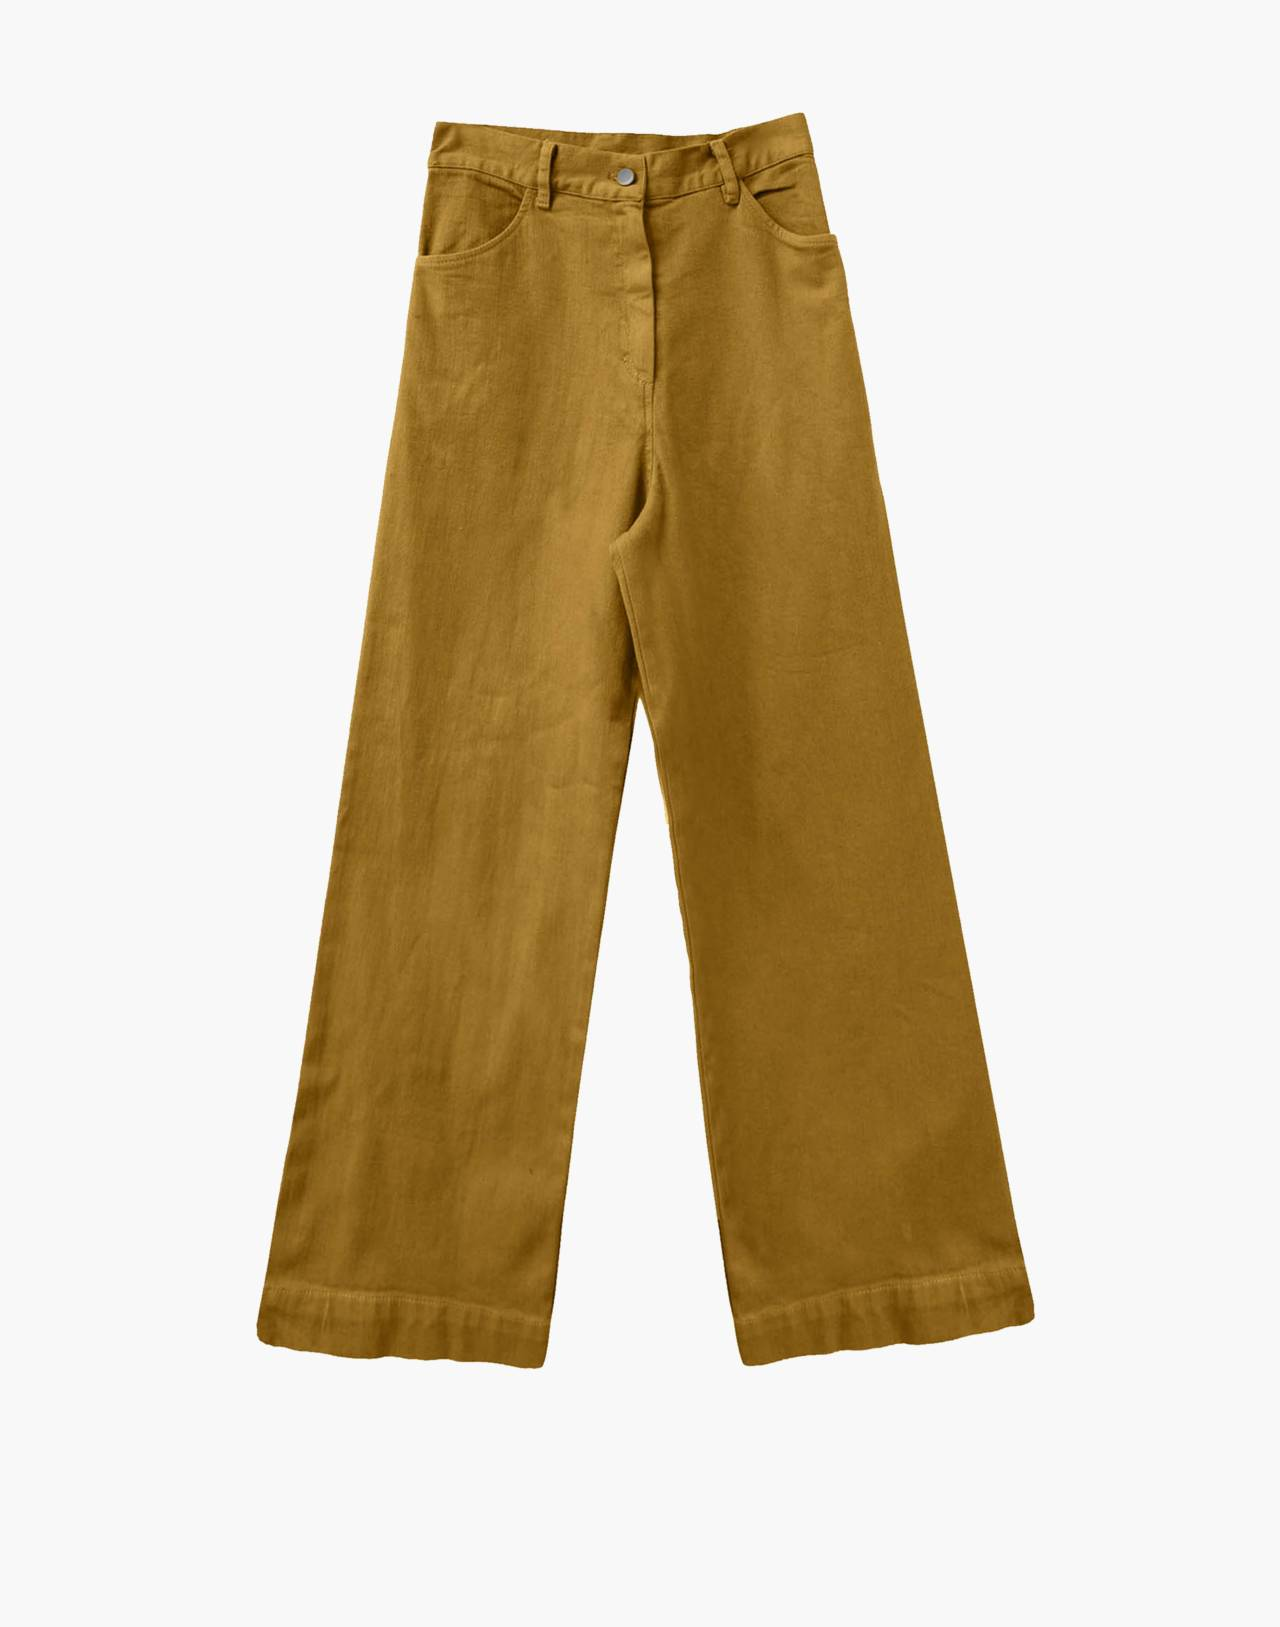 NICO NICO™ Solar Twill High-Waisted Jeans in yellow image 1